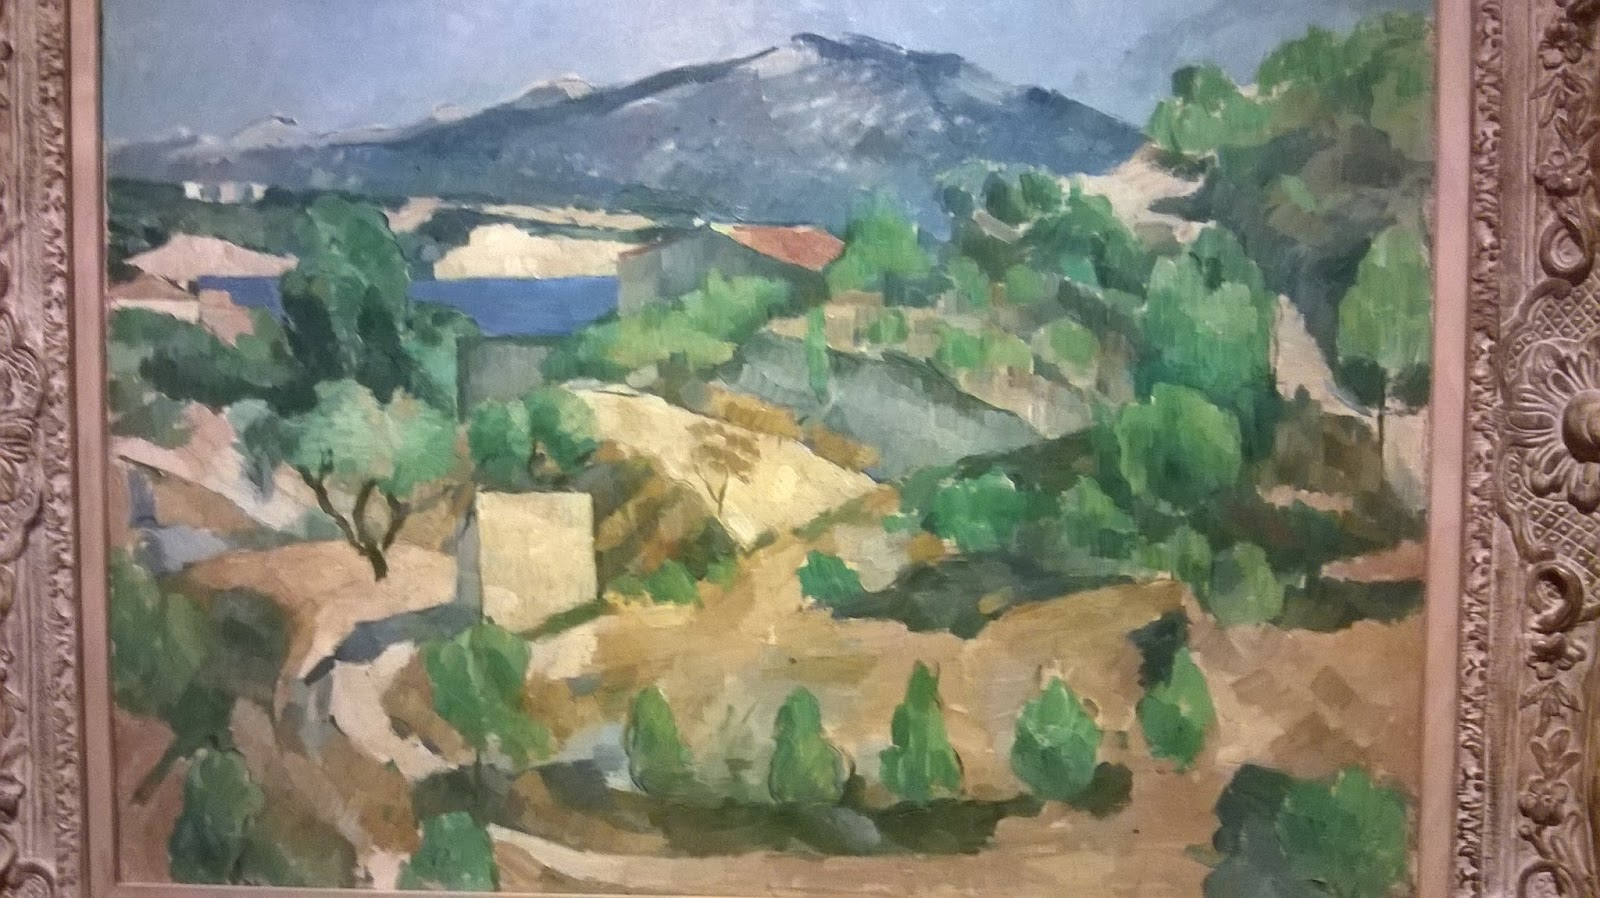 cezanne essay late work Note: citations are based on reference standards however, formatting rules can vary widely between applications and fields of interest or study the specific requirements or preferences of your reviewing publisher, classroom teacher, institution or organization should be applied.